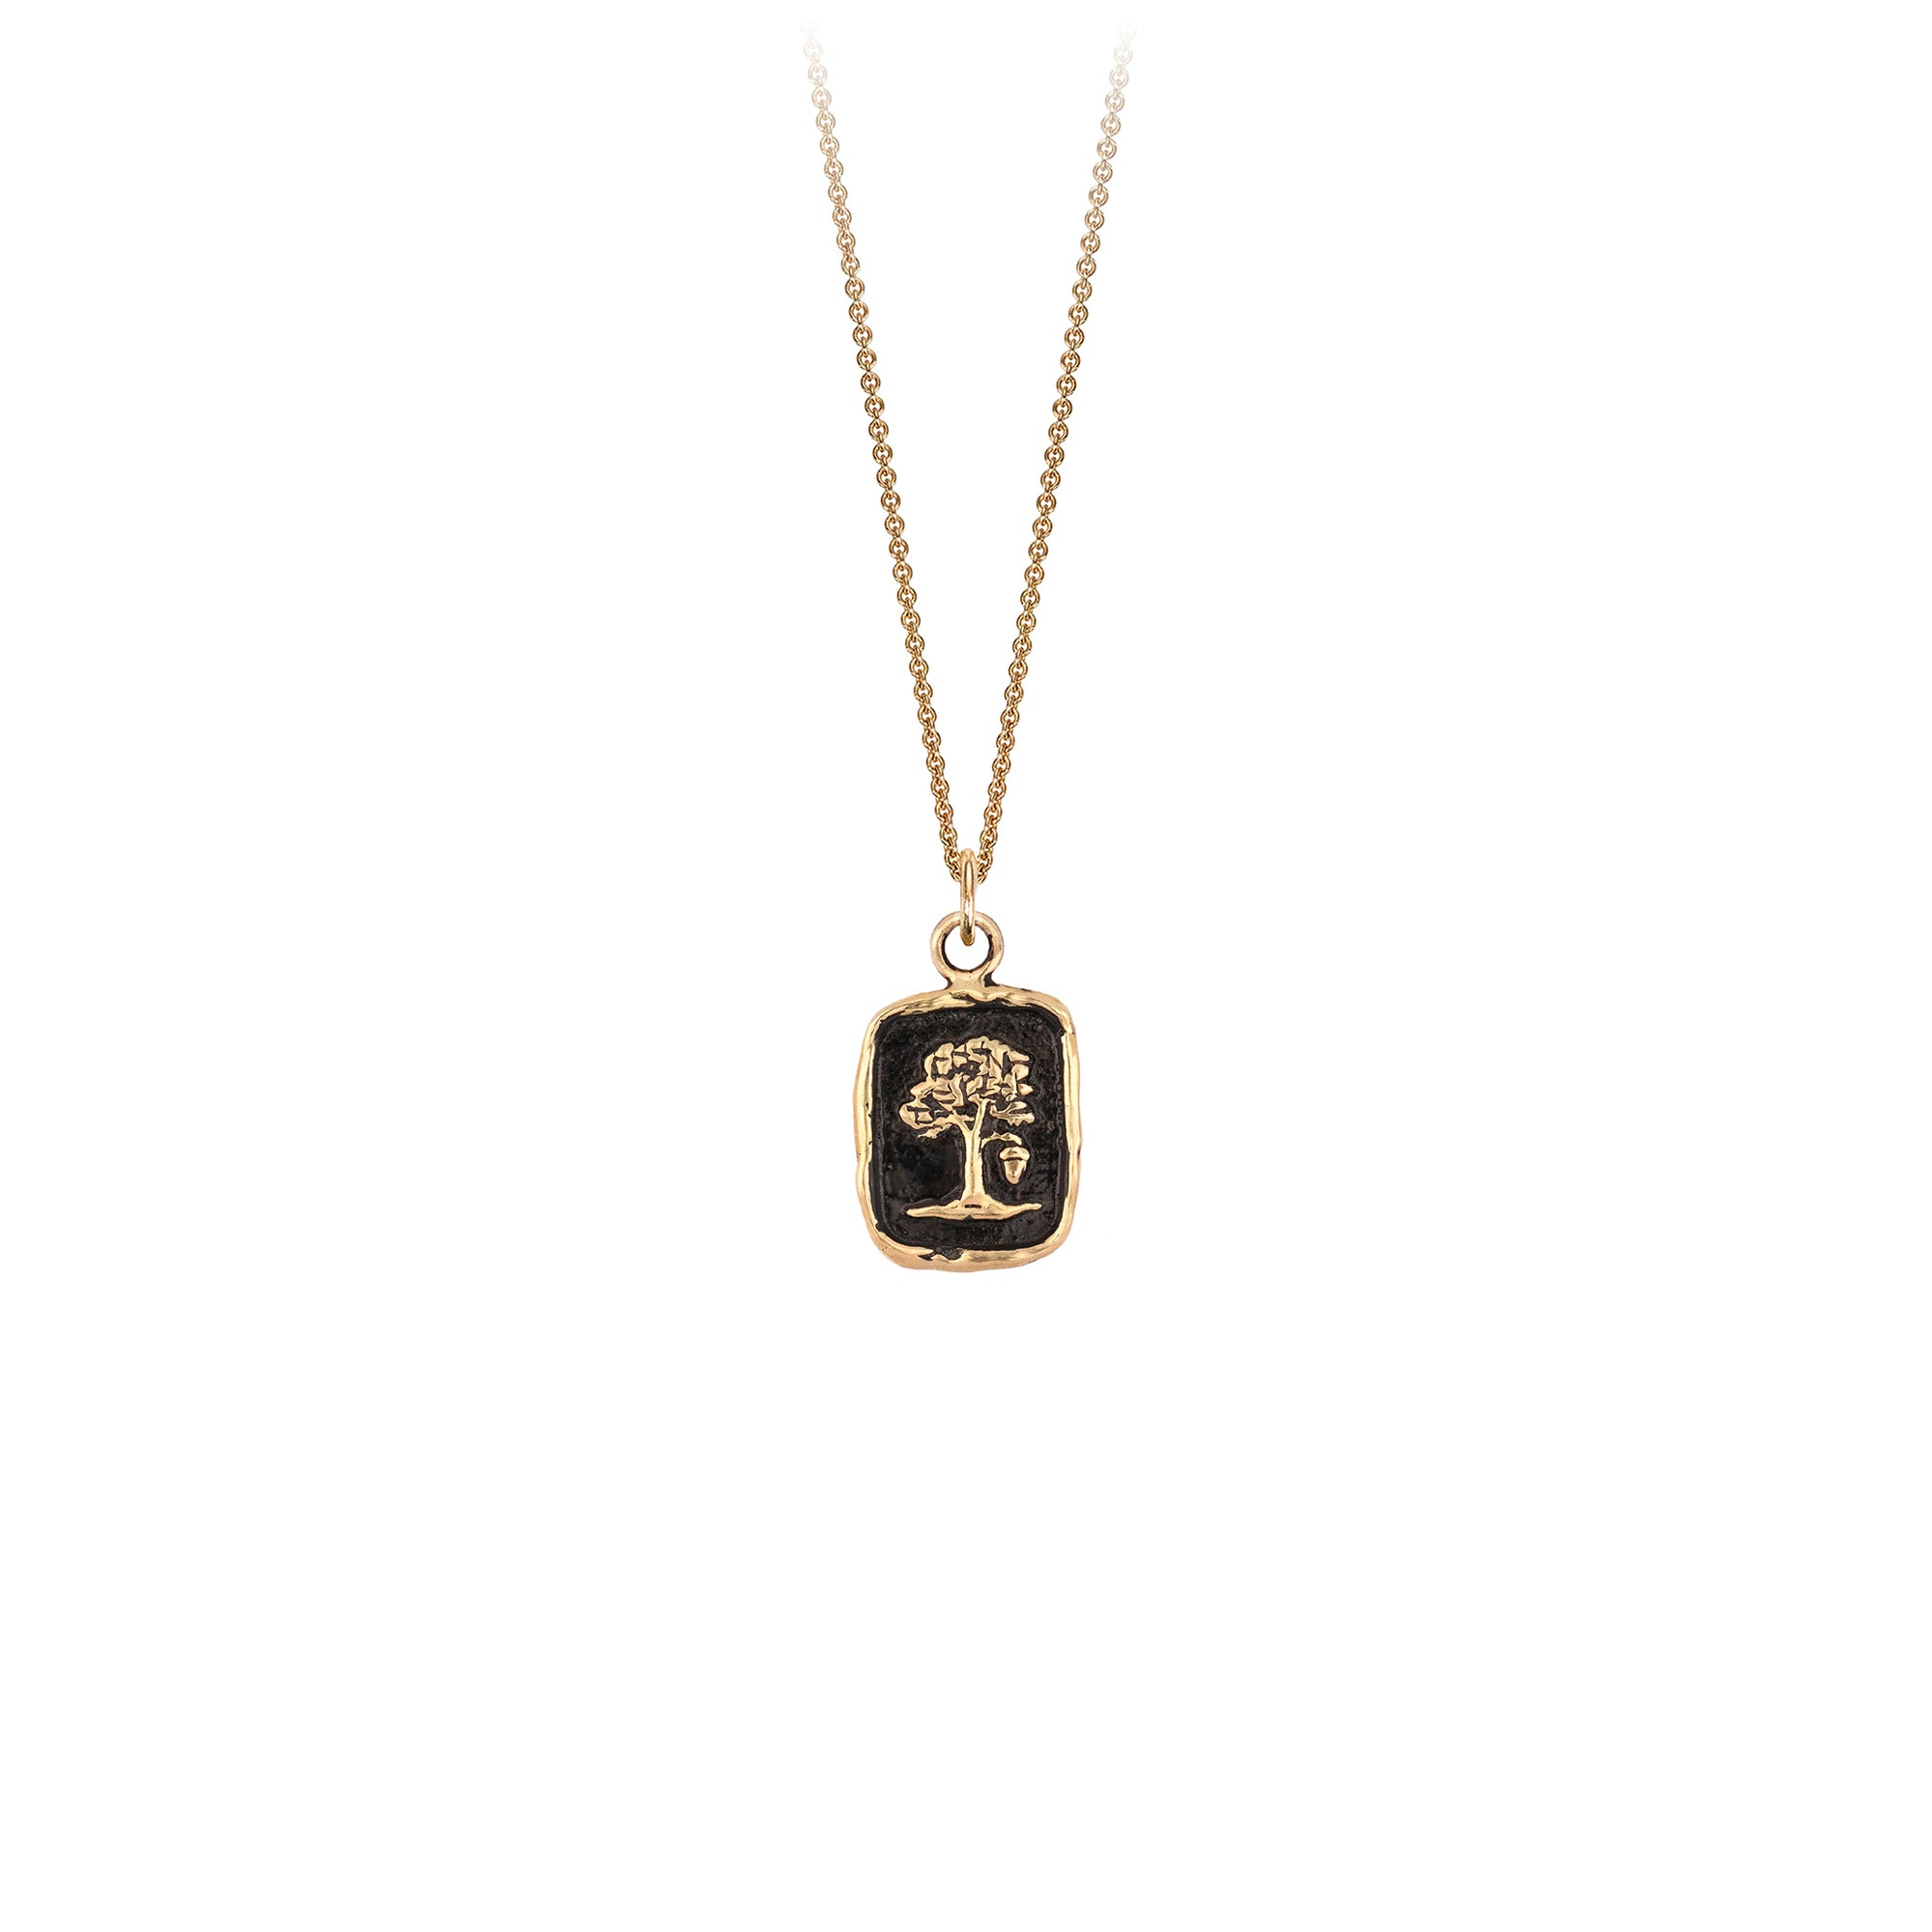 Pyrrha 14K Gold Potential for Greatness Talisman Necklace